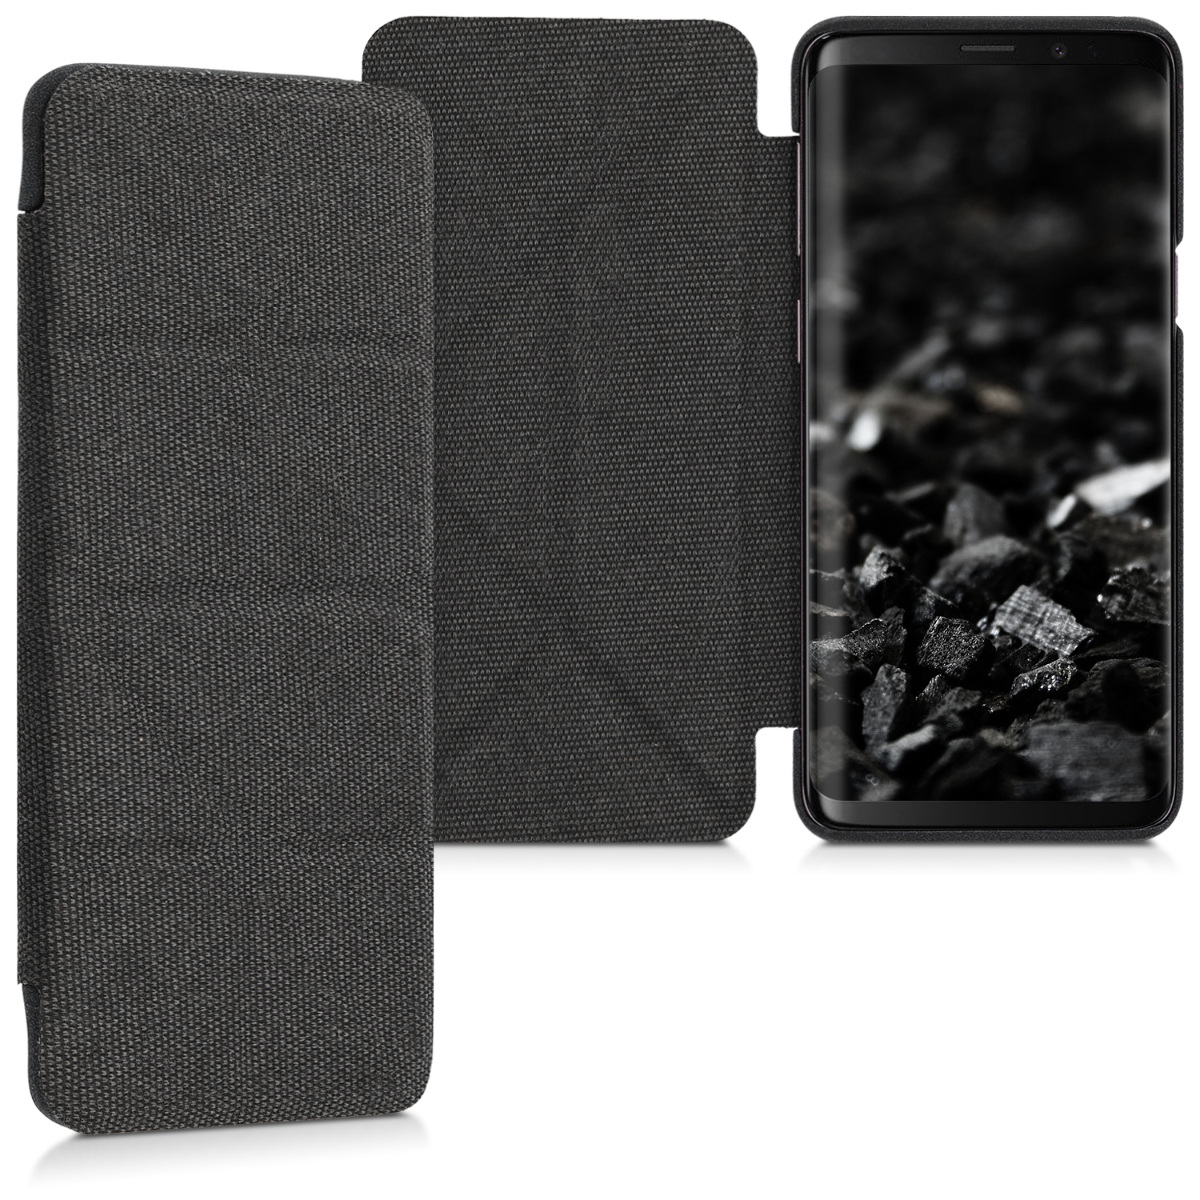 Pouzdro pro Samsung Galaxy S9 - Origami Textured Fabric Plastic Flip Cover with Stand - Dark Grey